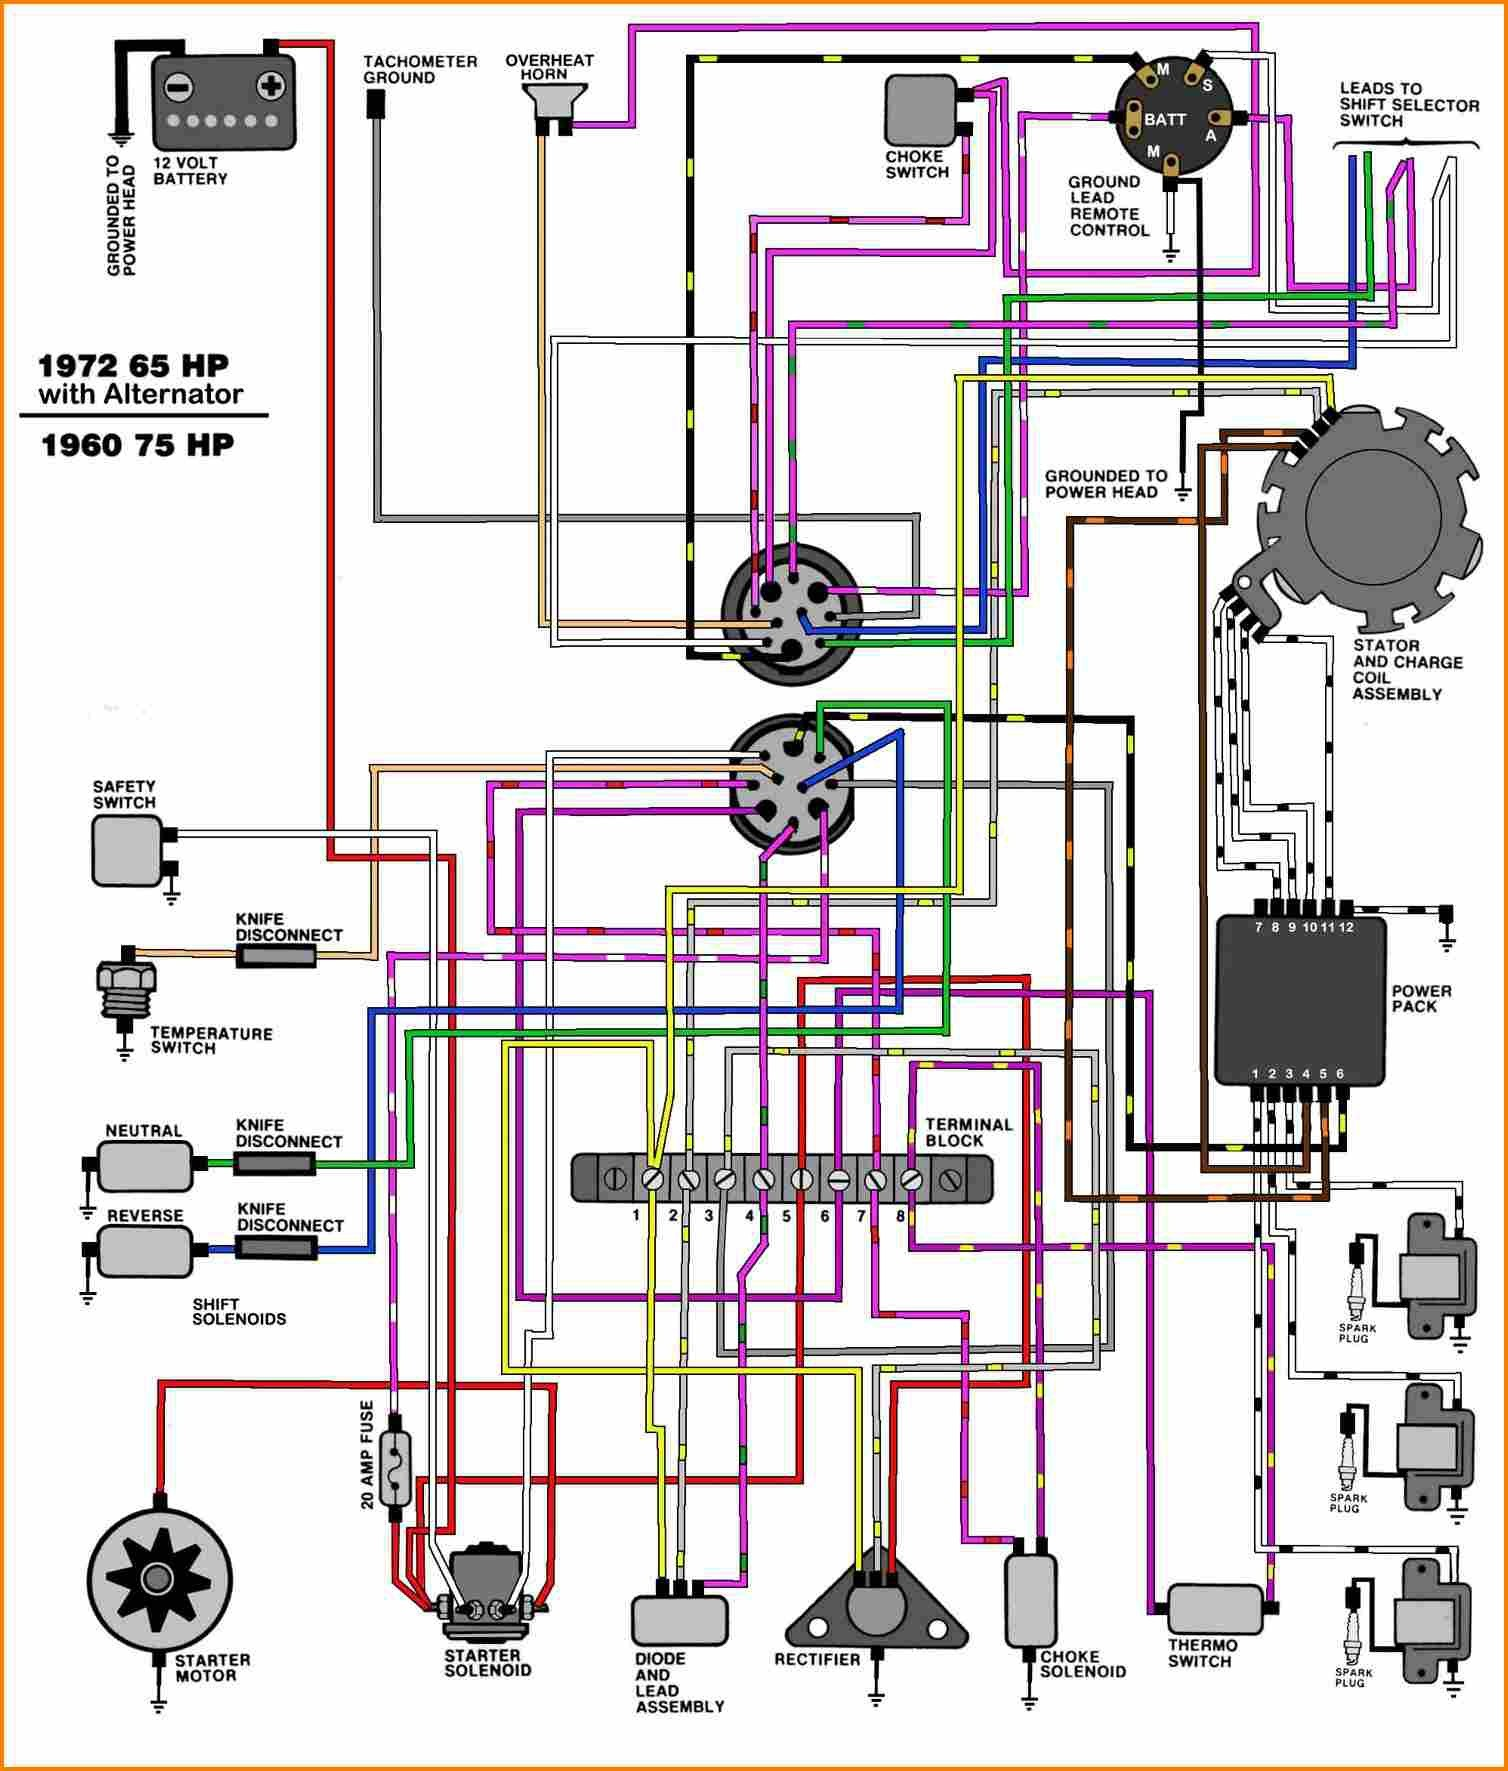 150 johnson outboard control wiring diagram 5 14 jaun bergbahnen de \u2022 Johnson Outboard Key Switch 1996 johnson outboard wiring diagrams 8 9 petraoberheit de u2022 rh 8 9 petraoberheit de wiring